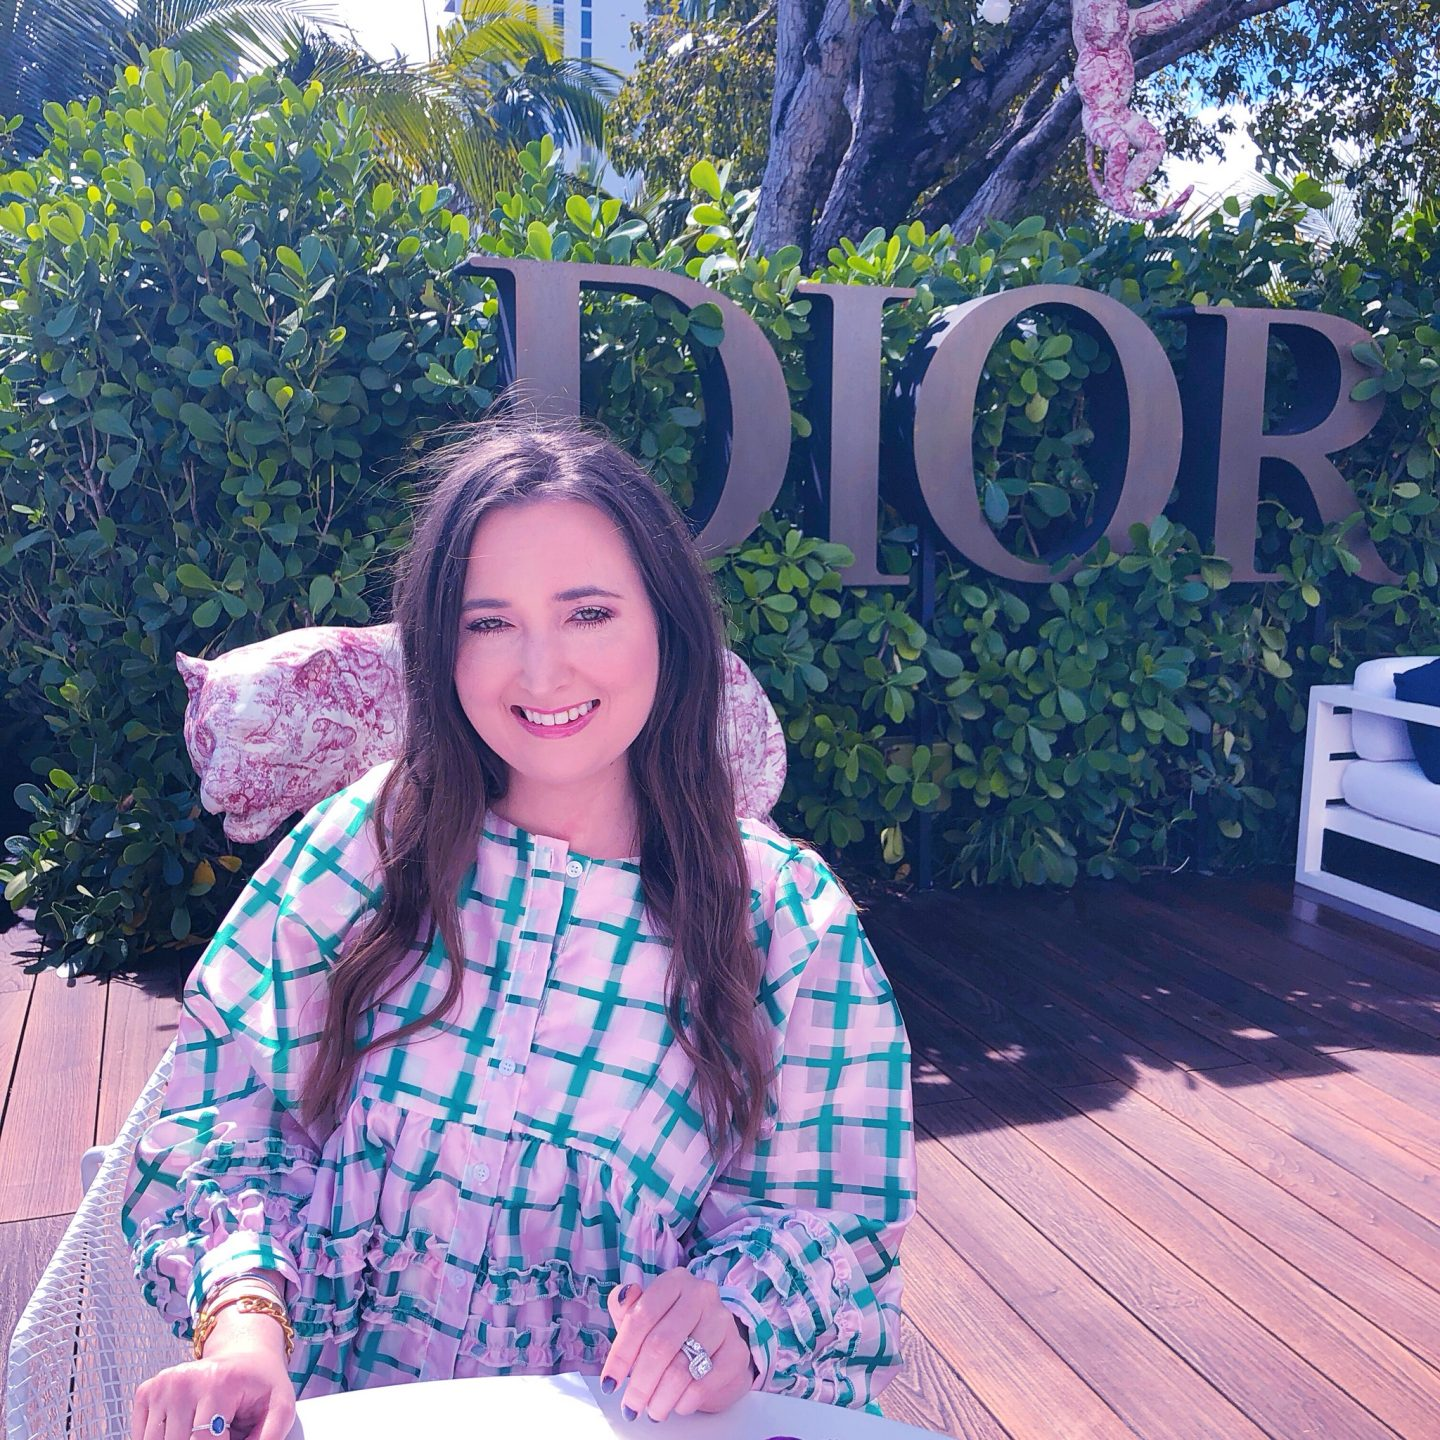 Dior Cafe Miami, cafe dior, cafe dior miami, what cafe dior miami looks like, dior latte, sister jane smock dress, sister jane dress